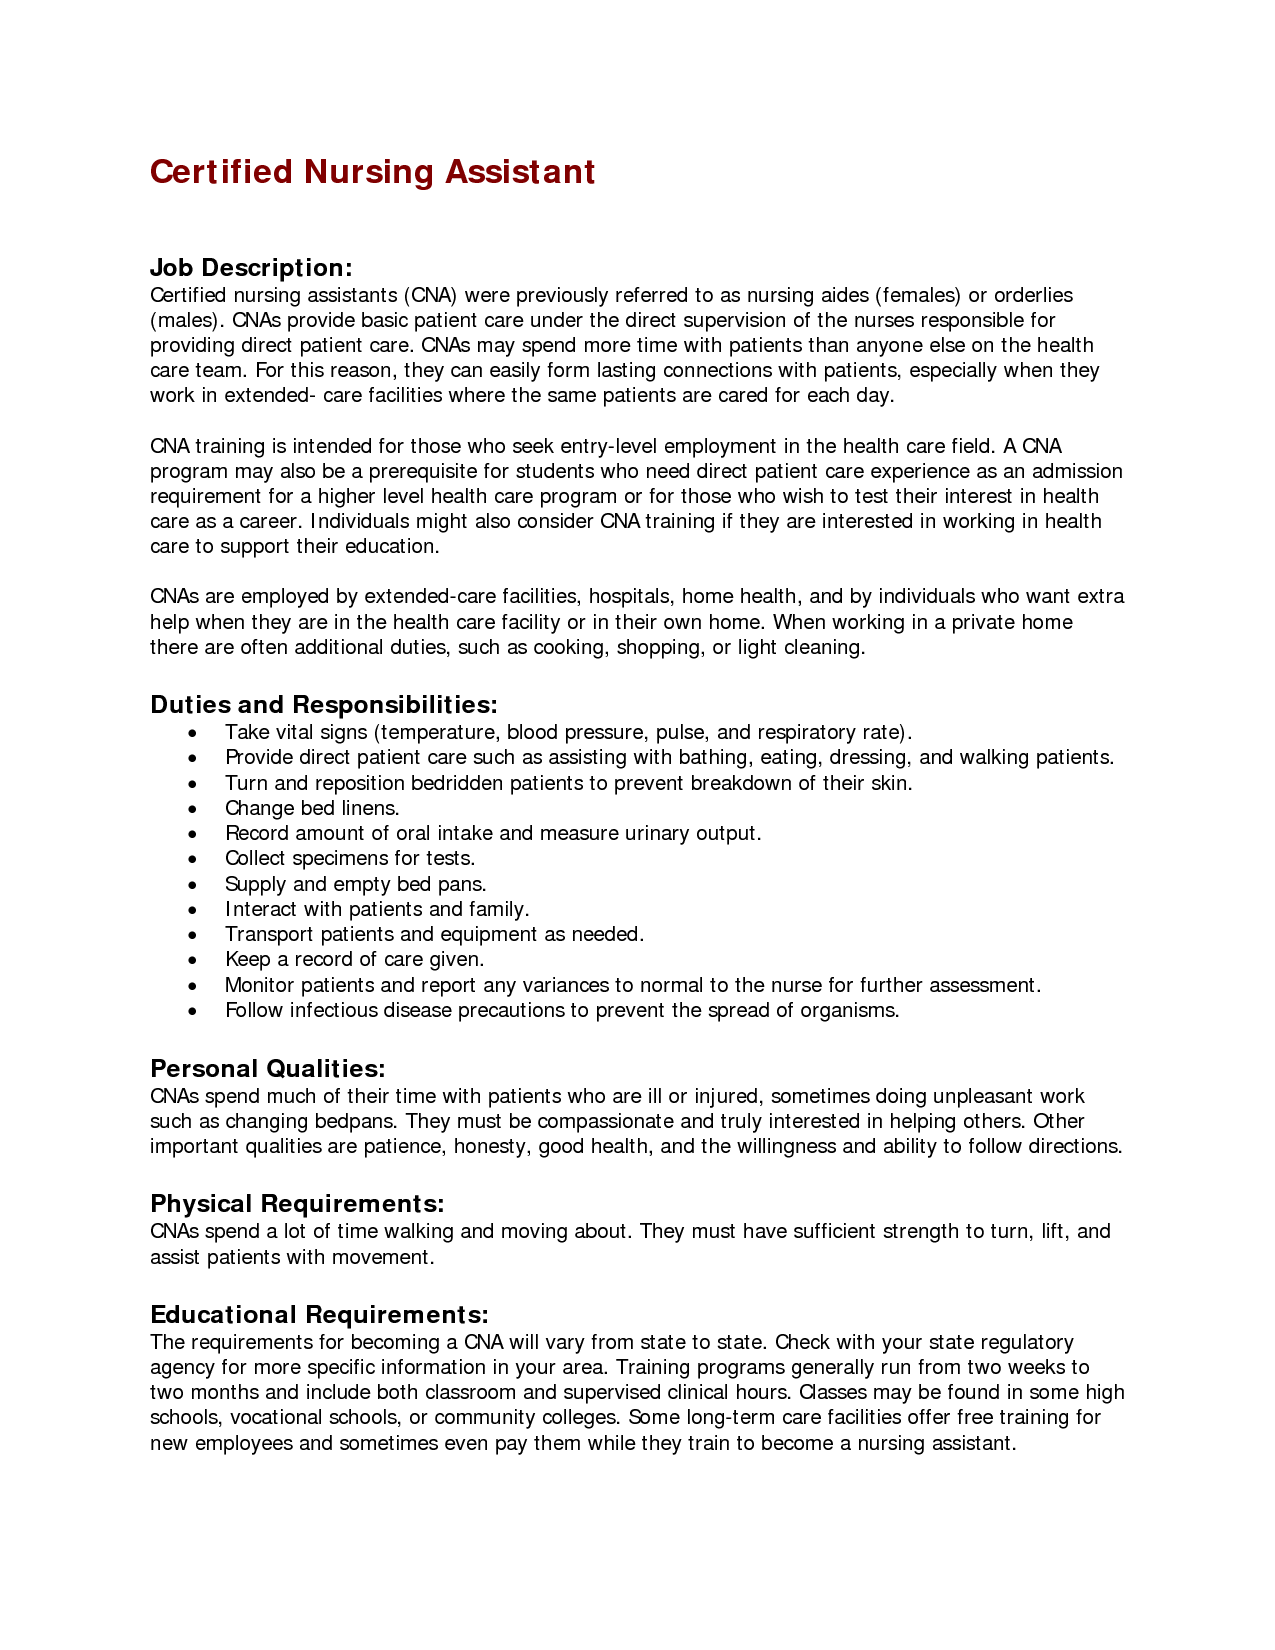 responsibilities nursing assistant resume job description cna duties and responsibilities - Duties Of Nurse Assistant